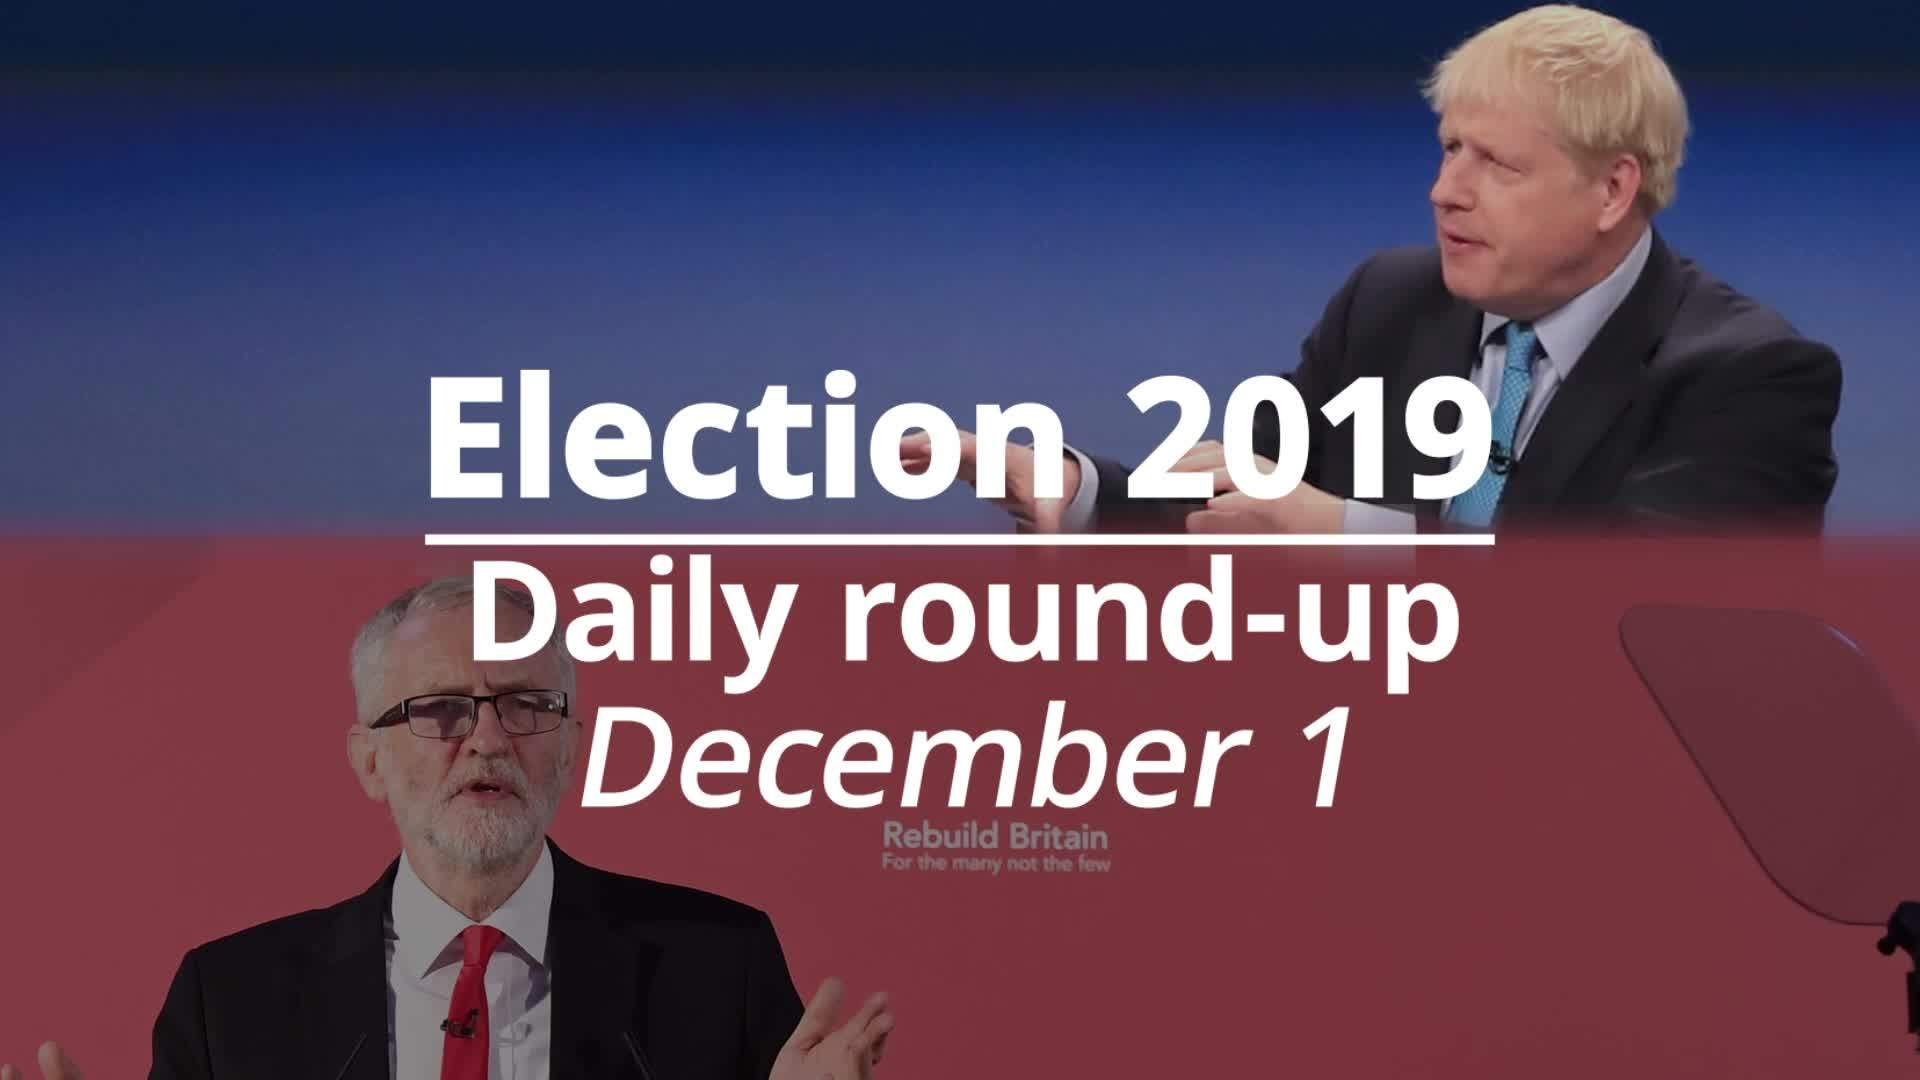 Election 2019: December 1 round-up